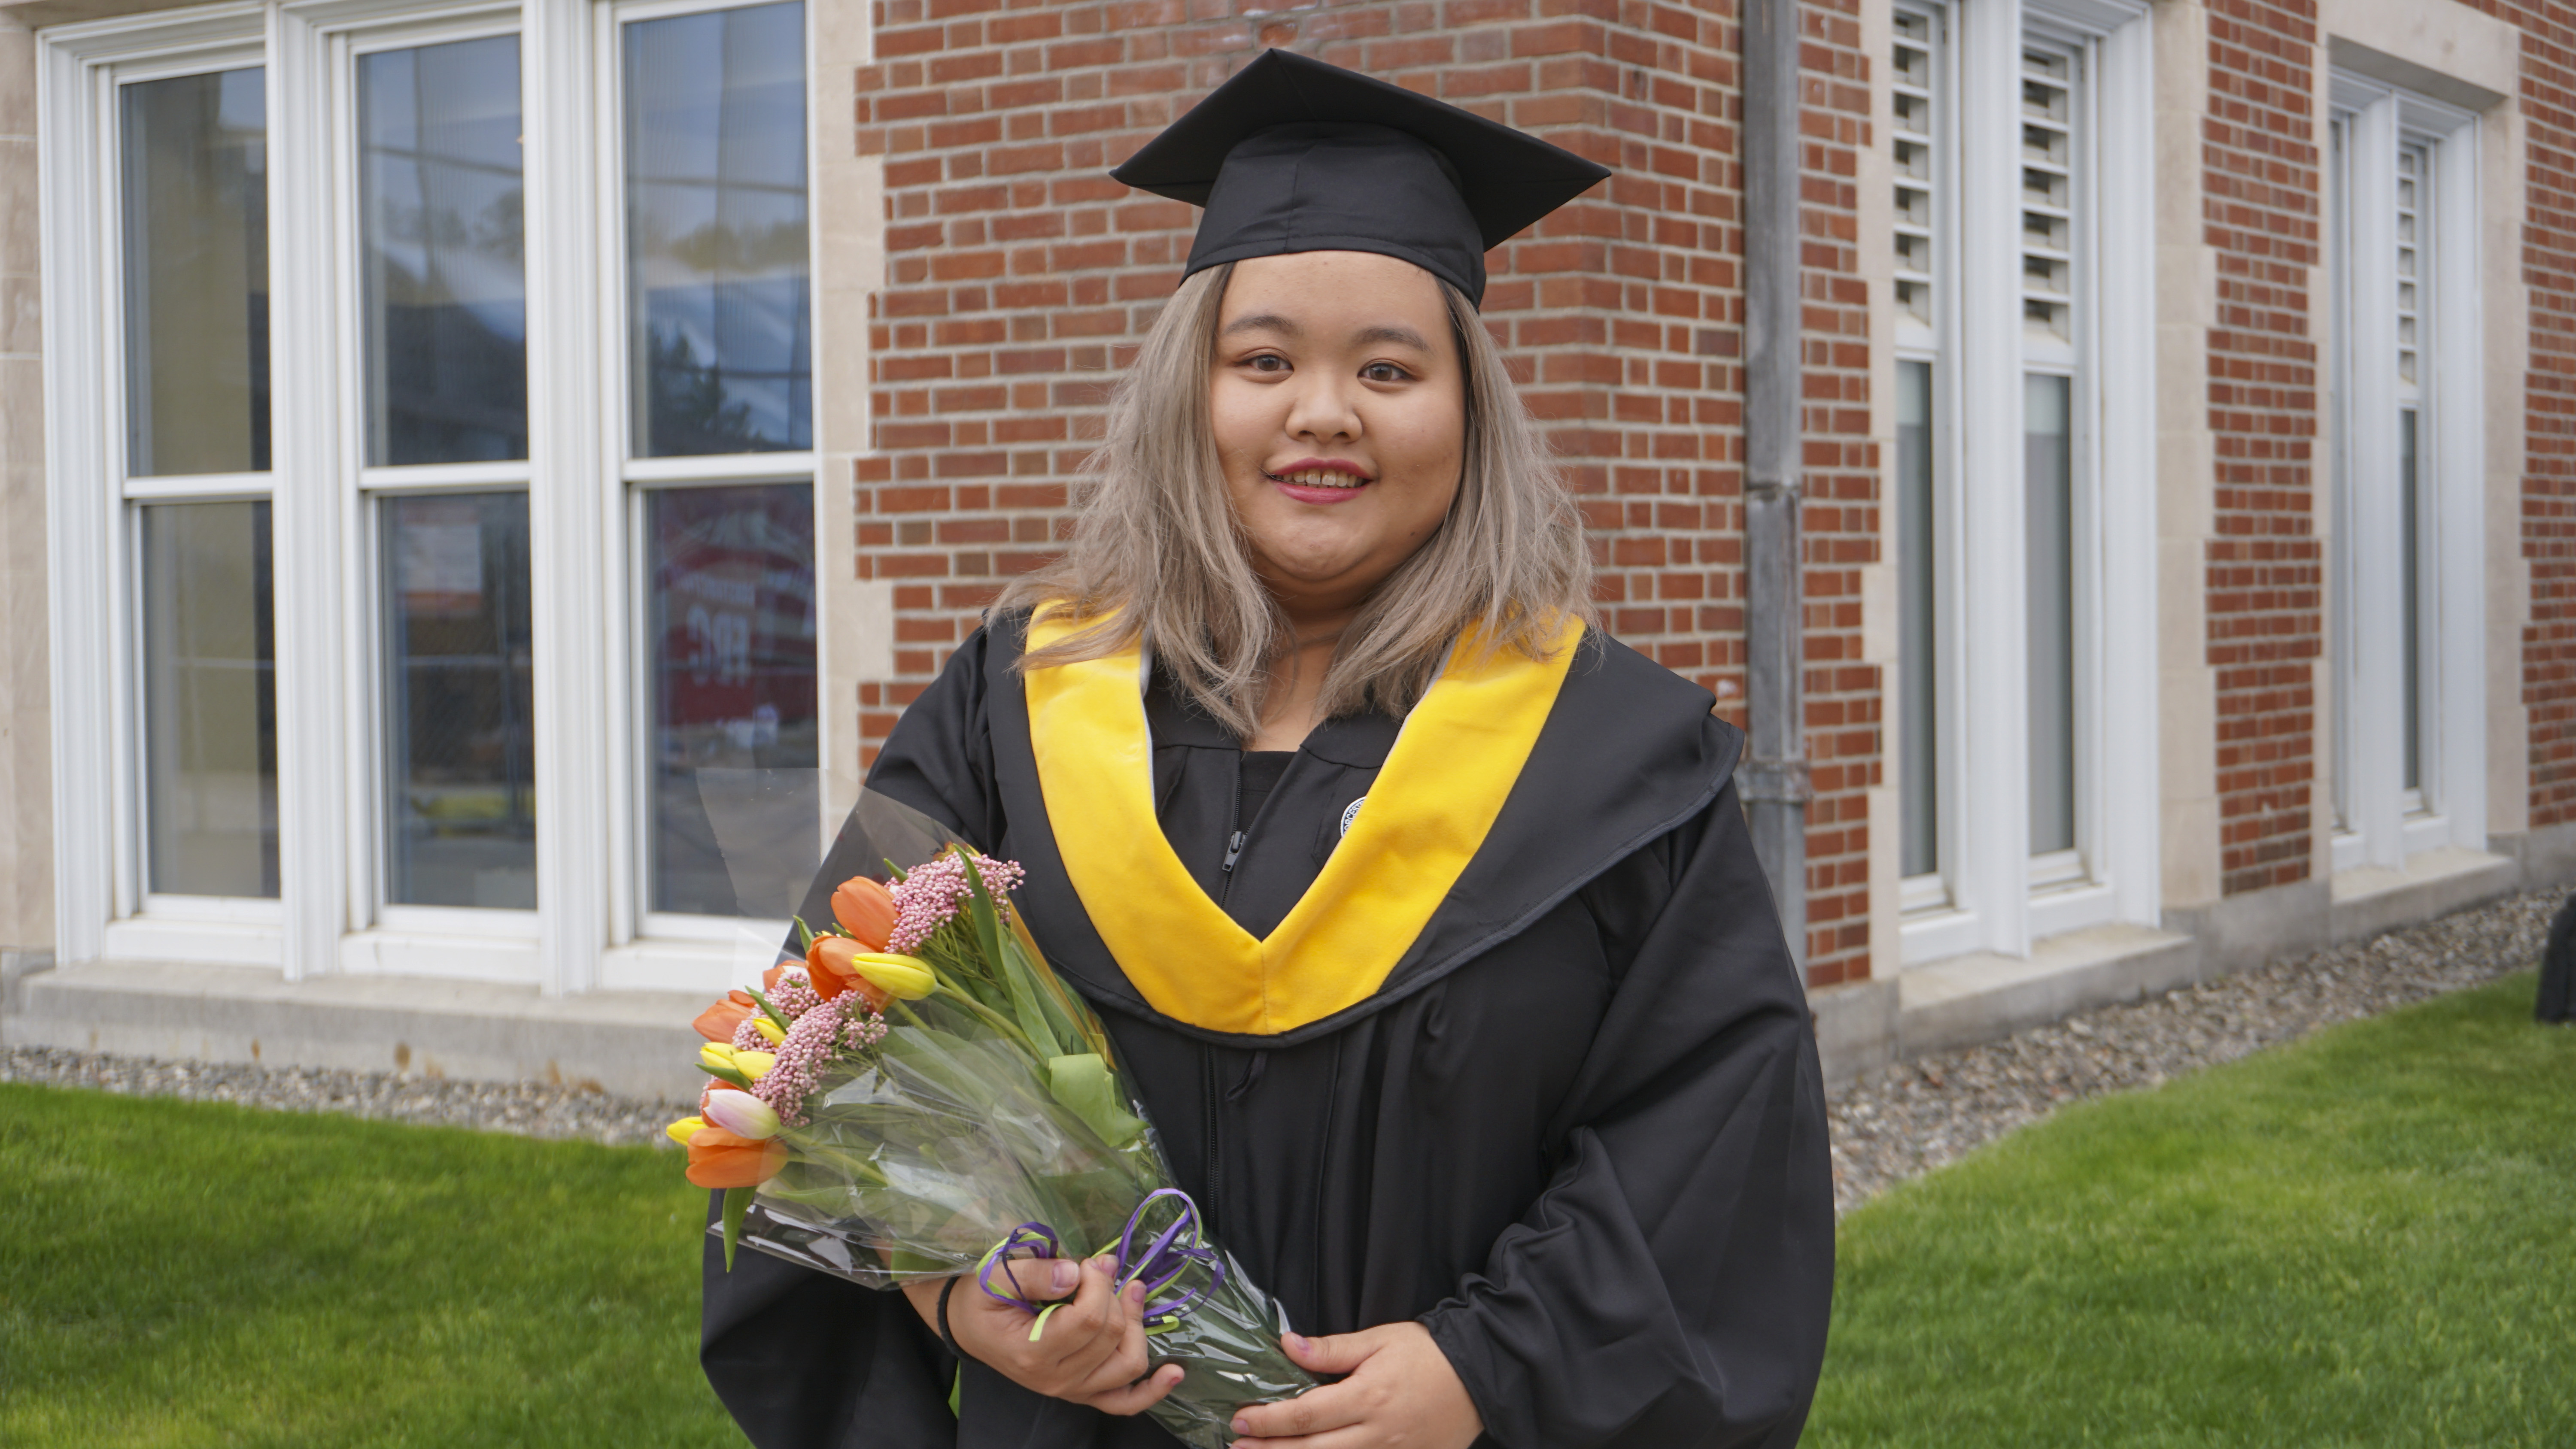 Zhenyan Lin smiles in her cap and gown while holding a bouquet of flowers.